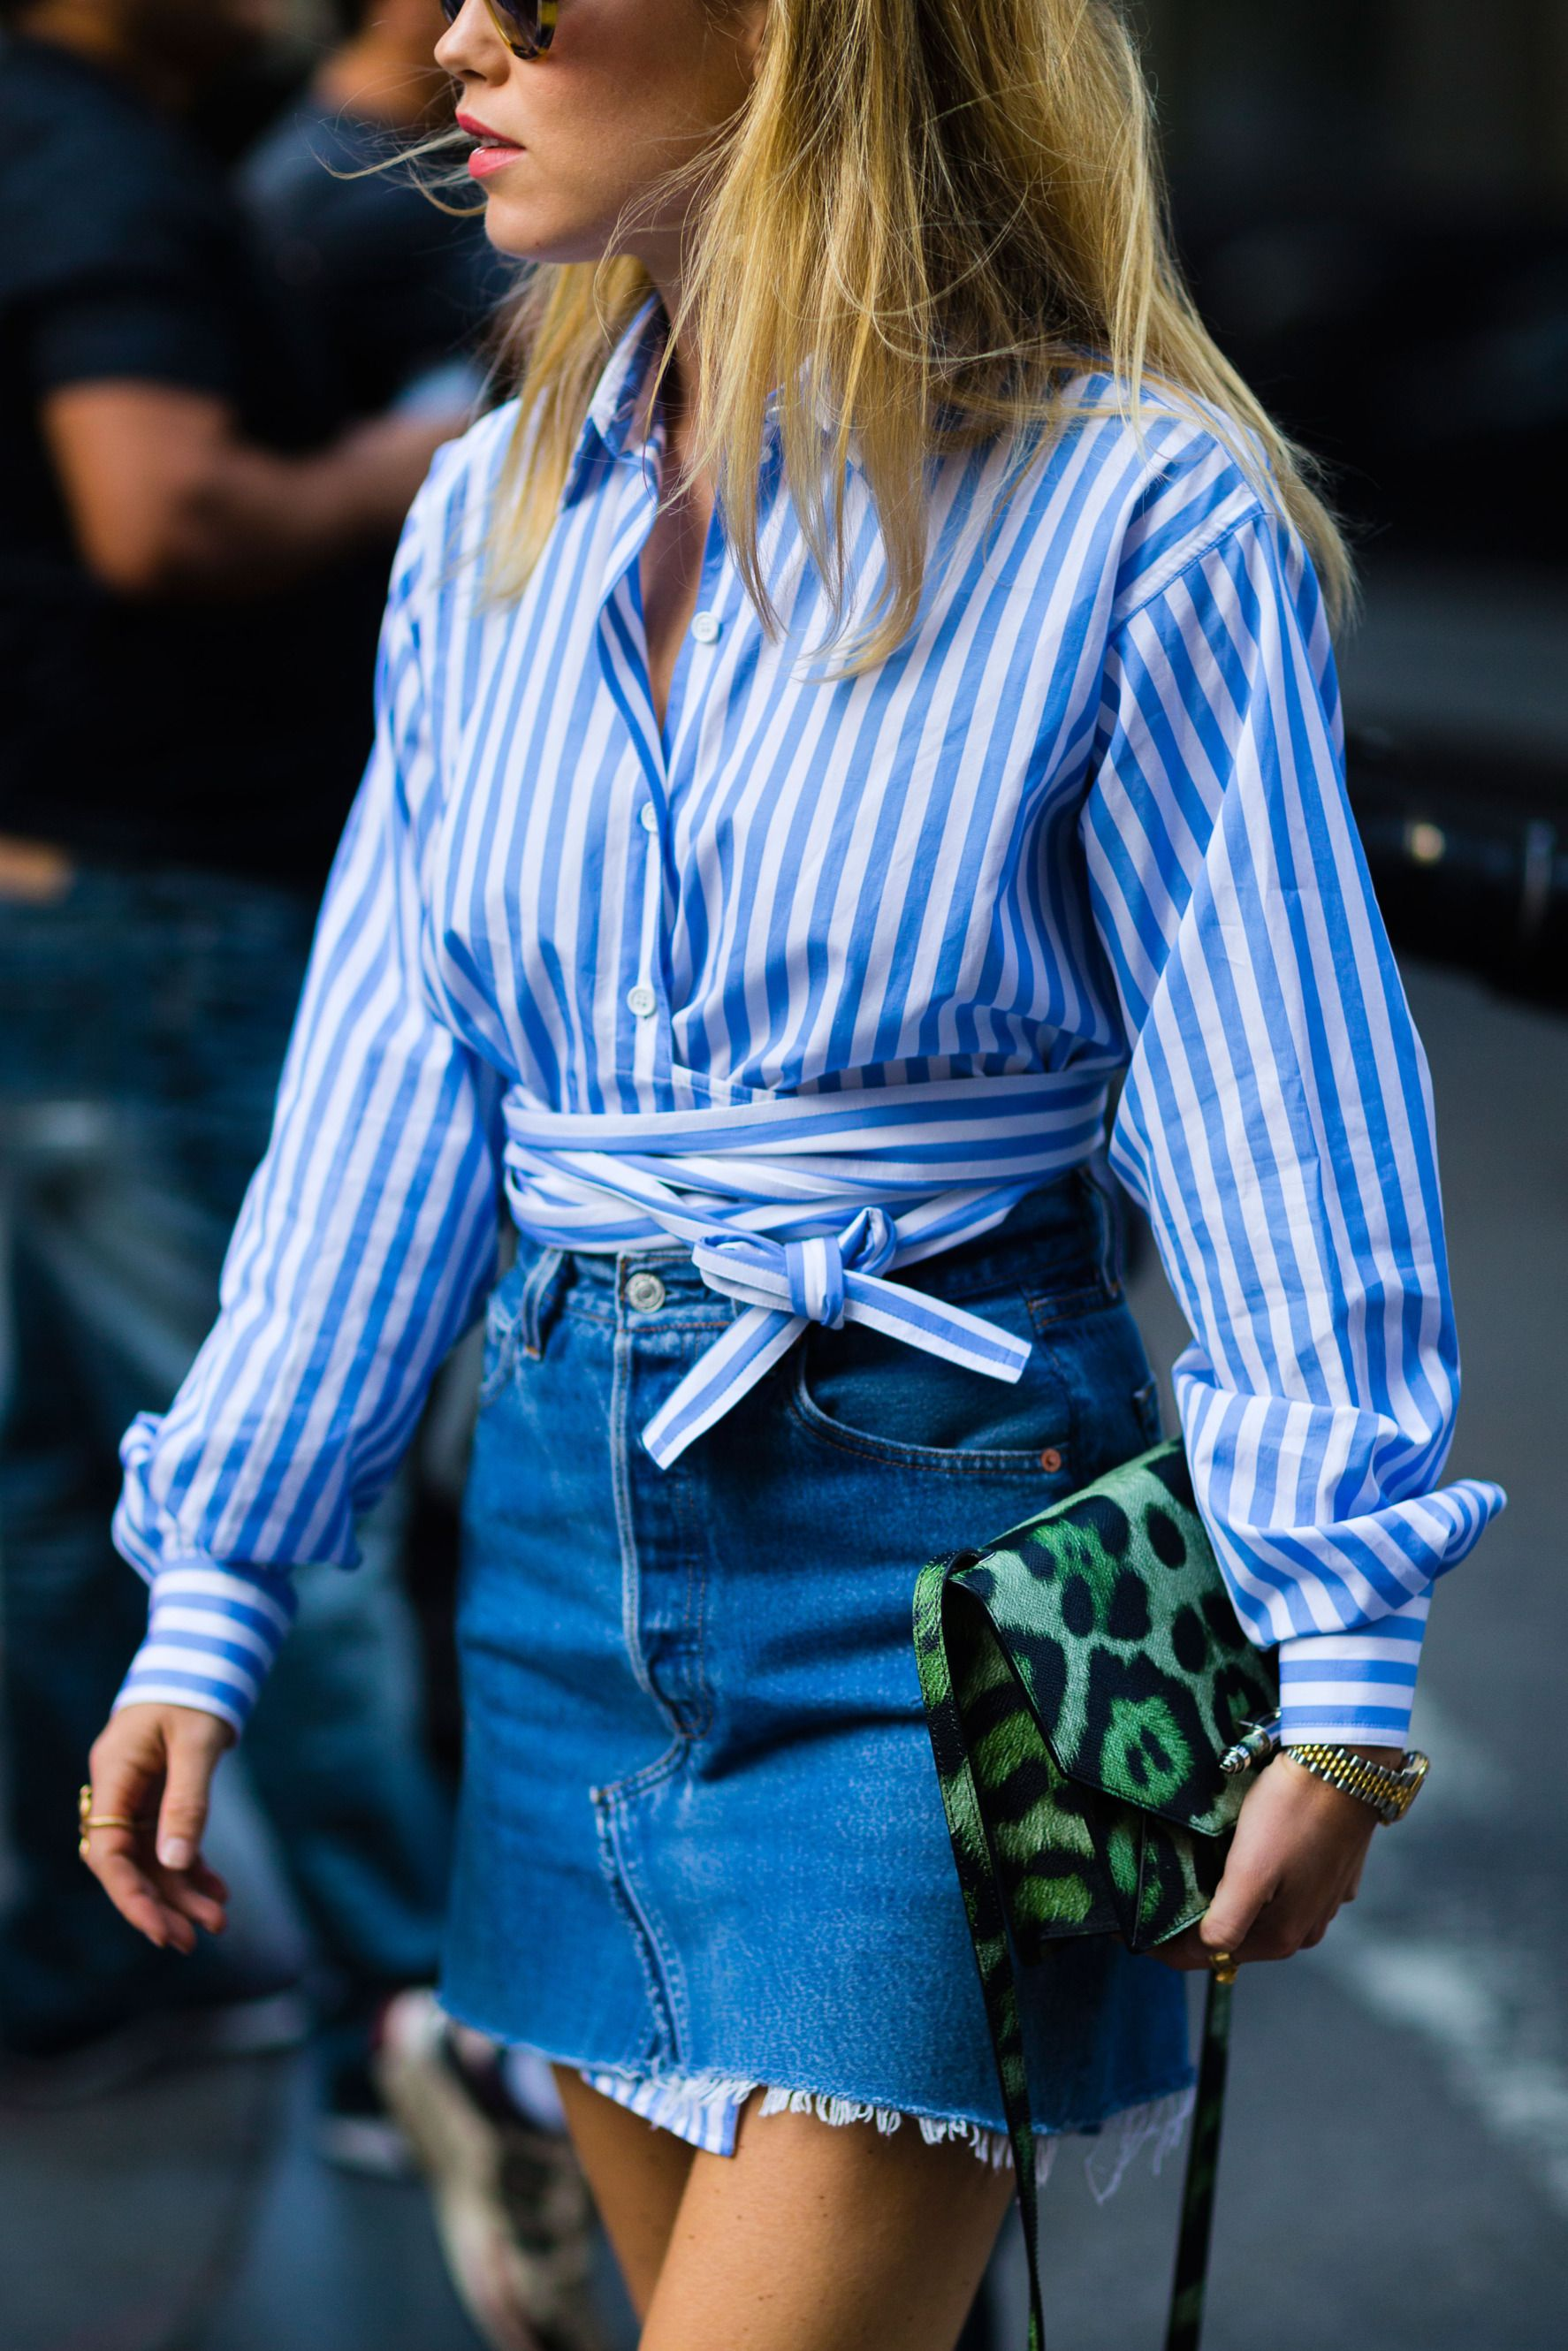 Striped wrap shirt is worn with a ripped denim skirt